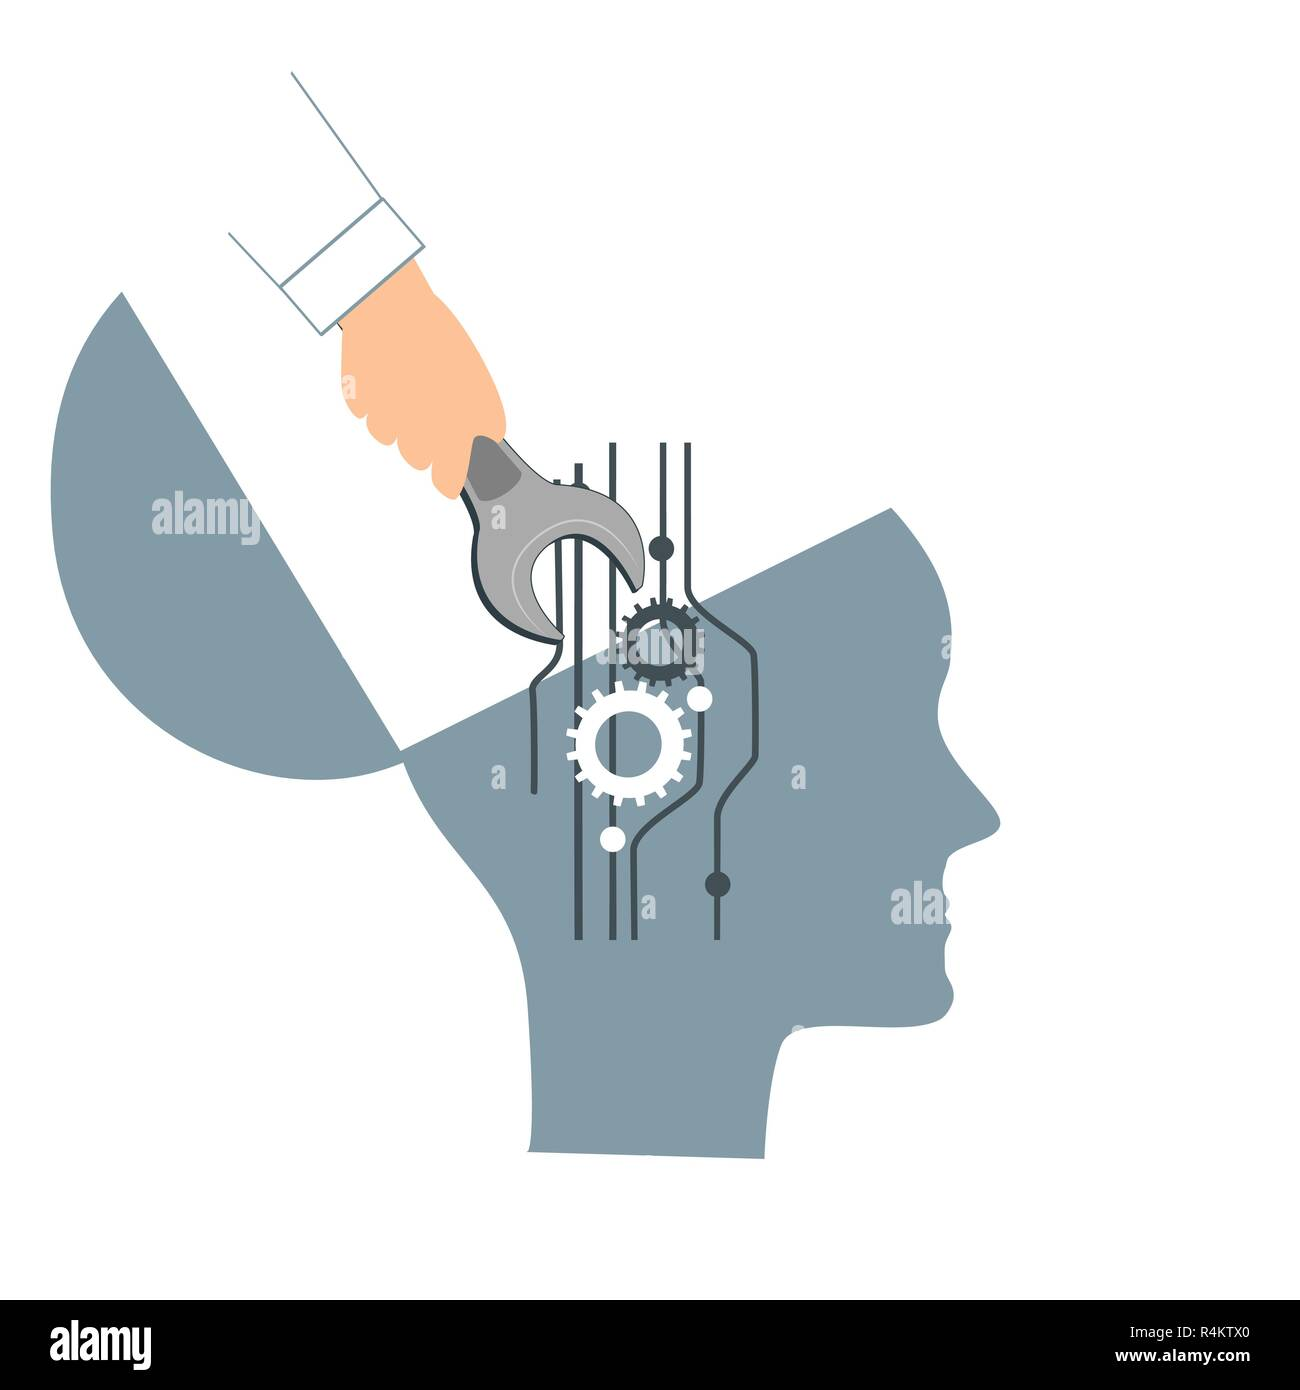 NLP or Neuro-Linguistic Programming concept. Open Human Head and a Hand with a Wrench. Manipulation, Mental health, personal development, and psychotherapy icon - Stock Image